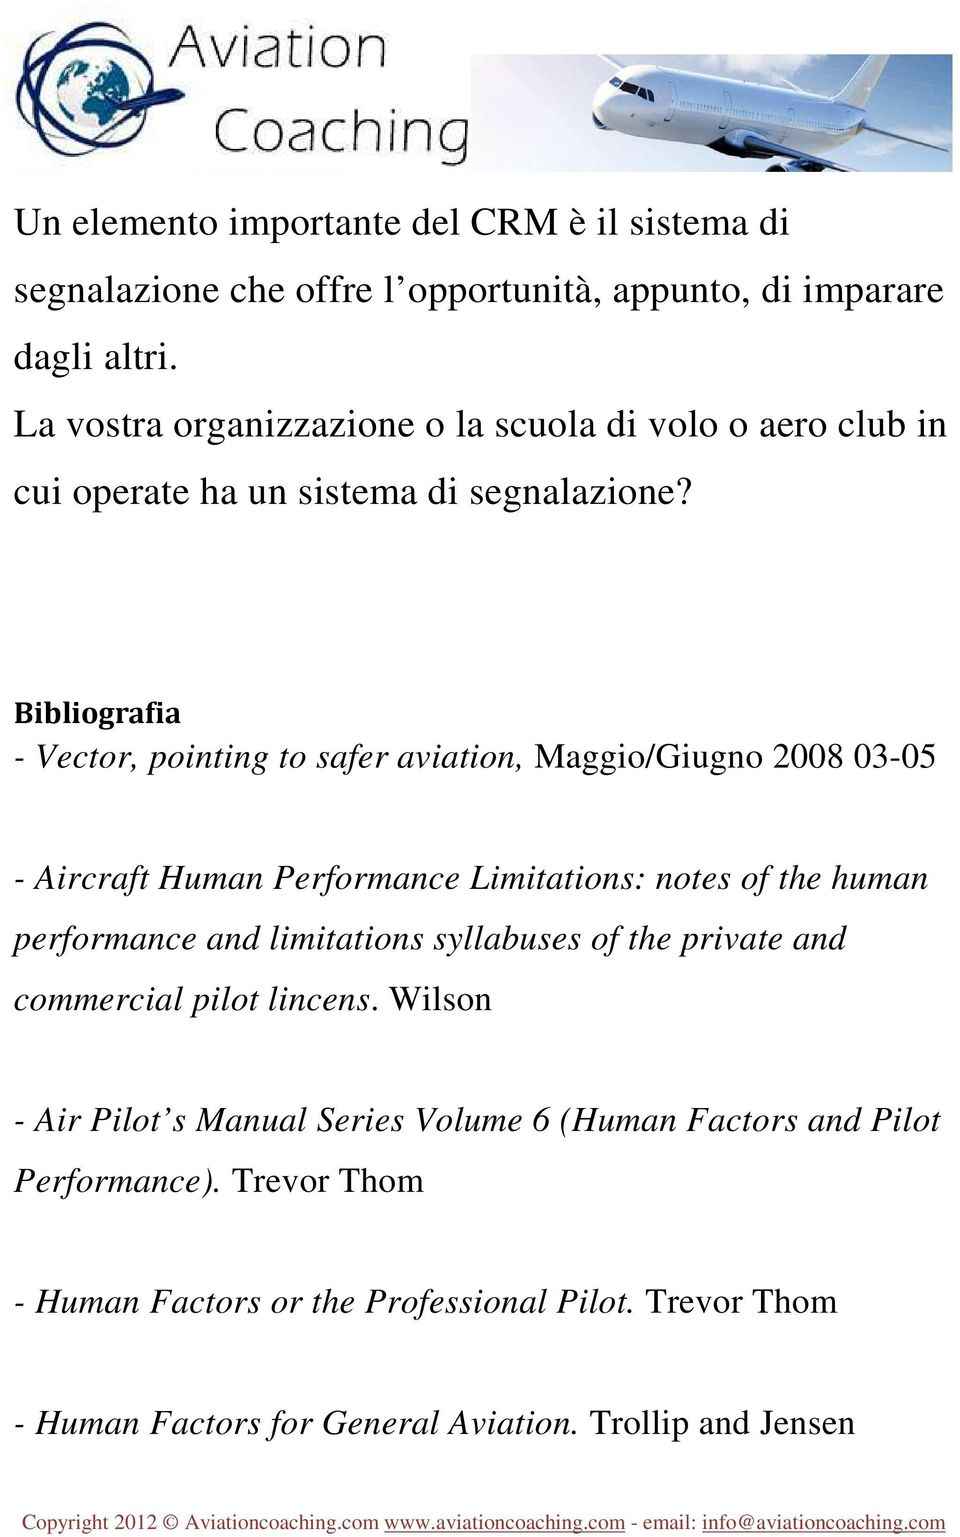 Bibliografia - Vector, pointing to safer aviation, Maggio/Giugno 2008 03-05 - Aircraft Human Performance Limitations: notes of the human performance and